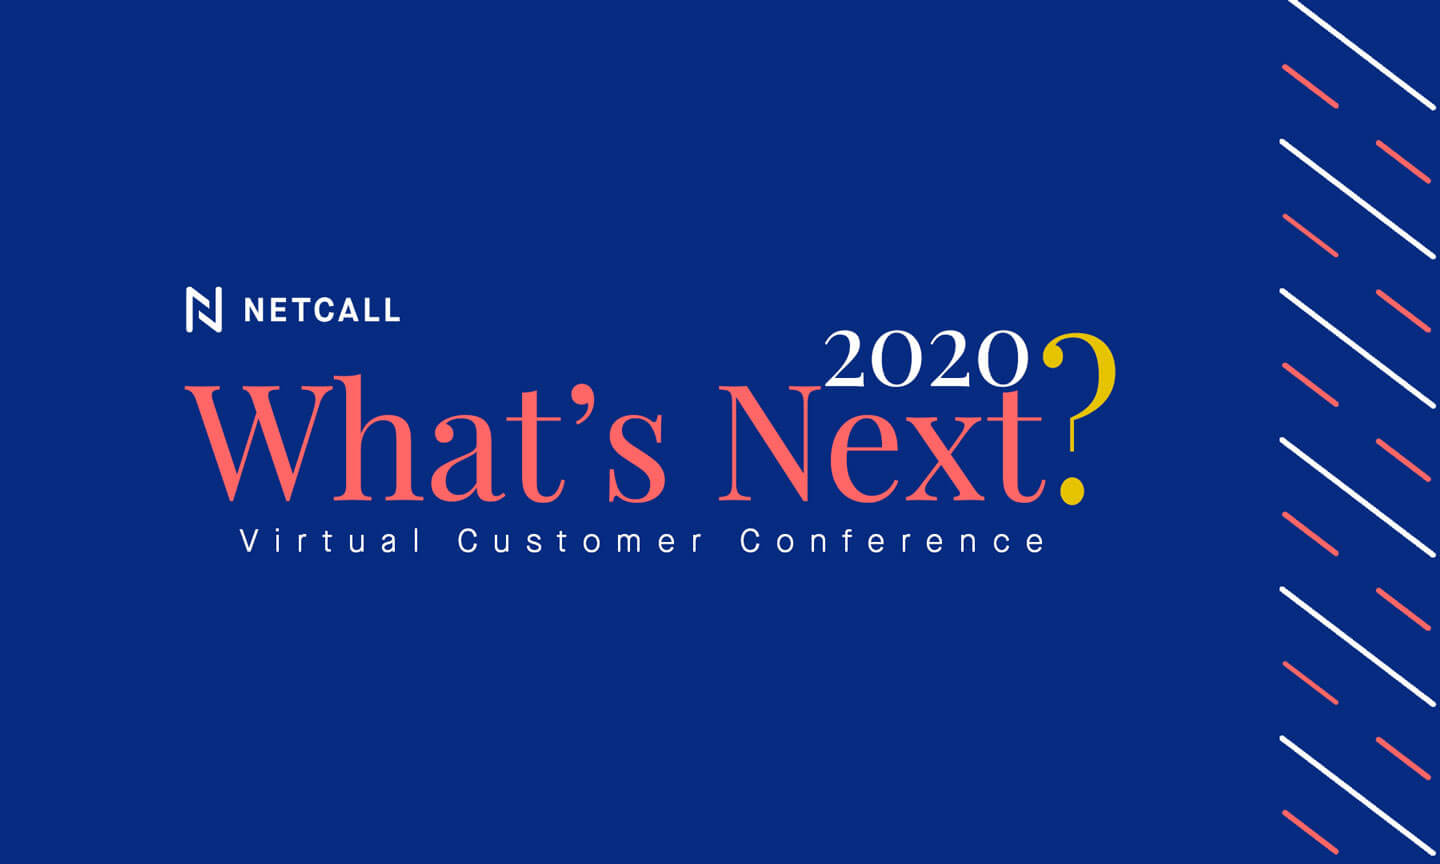 What's Next? 2020 Virtual Customer Conference